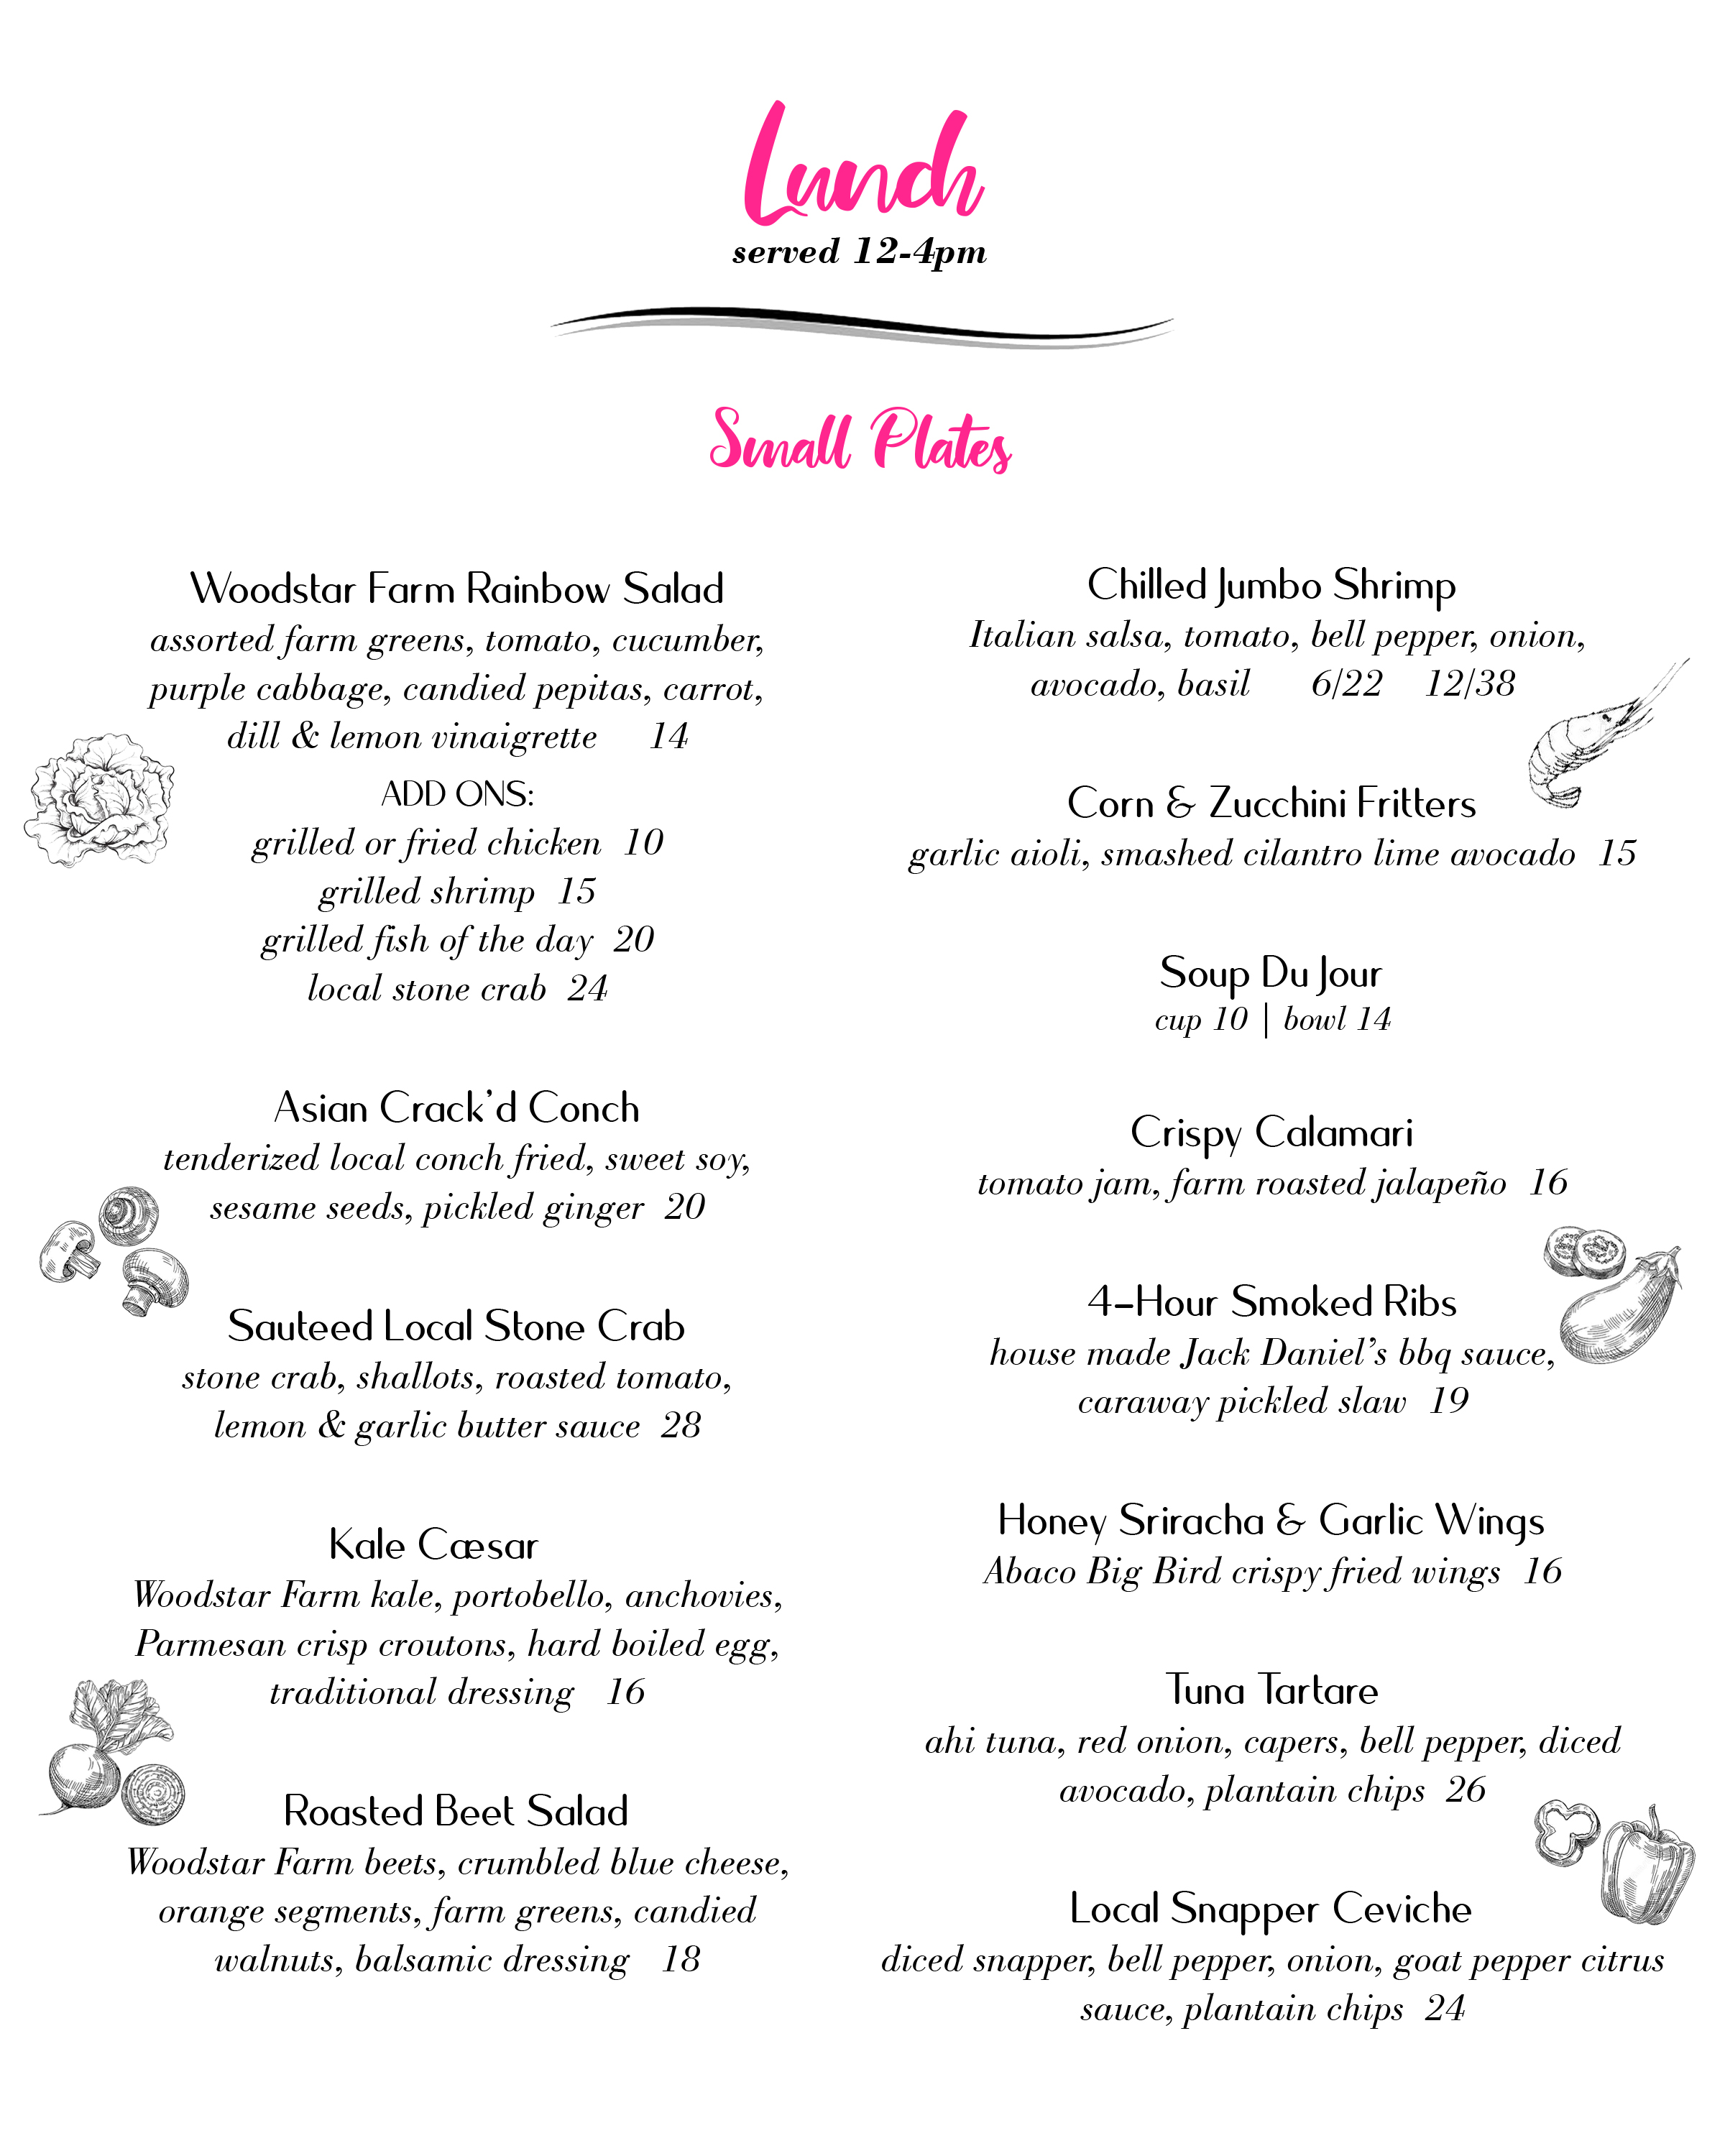 Lunch menu - small plates